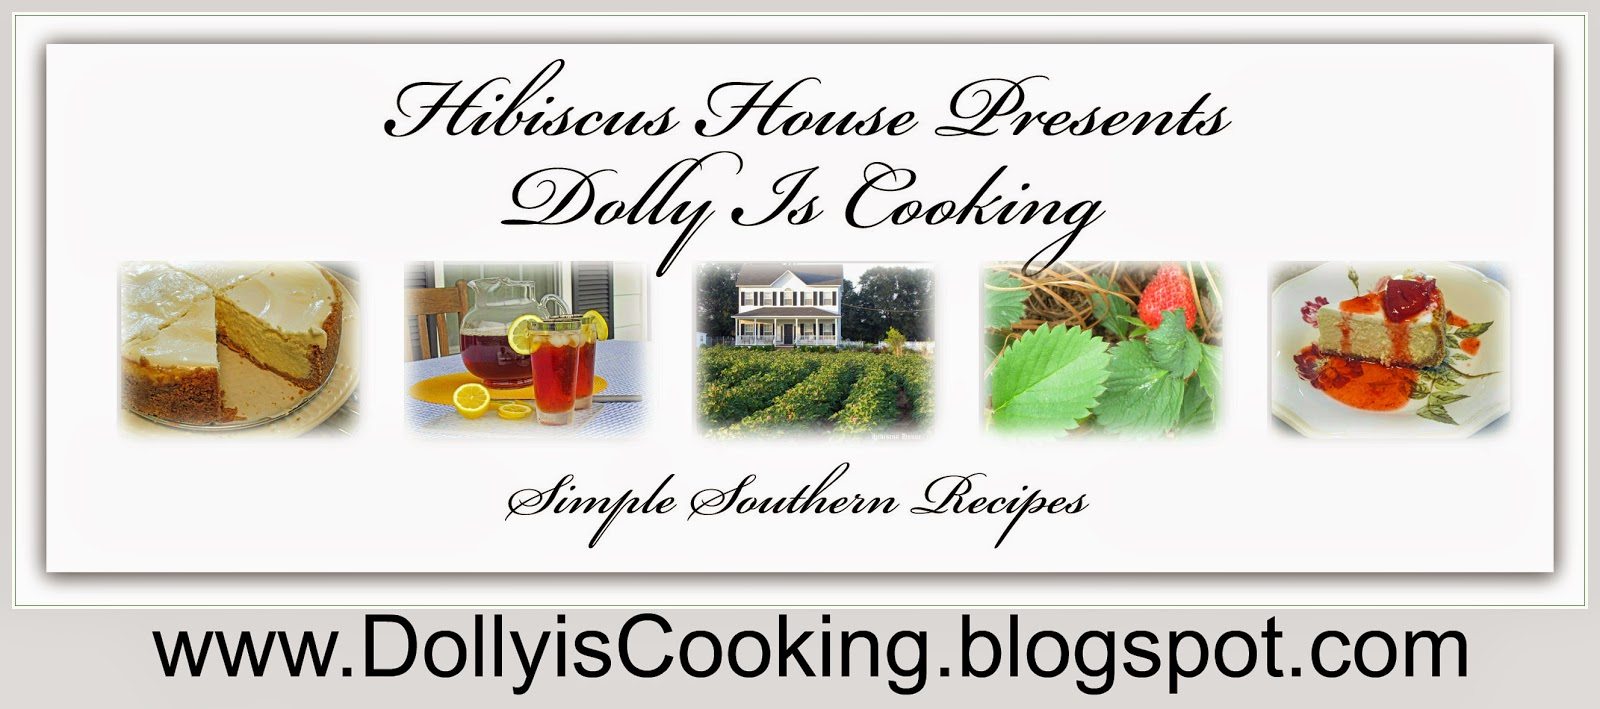 www.dollyiscooking.blogspot.com